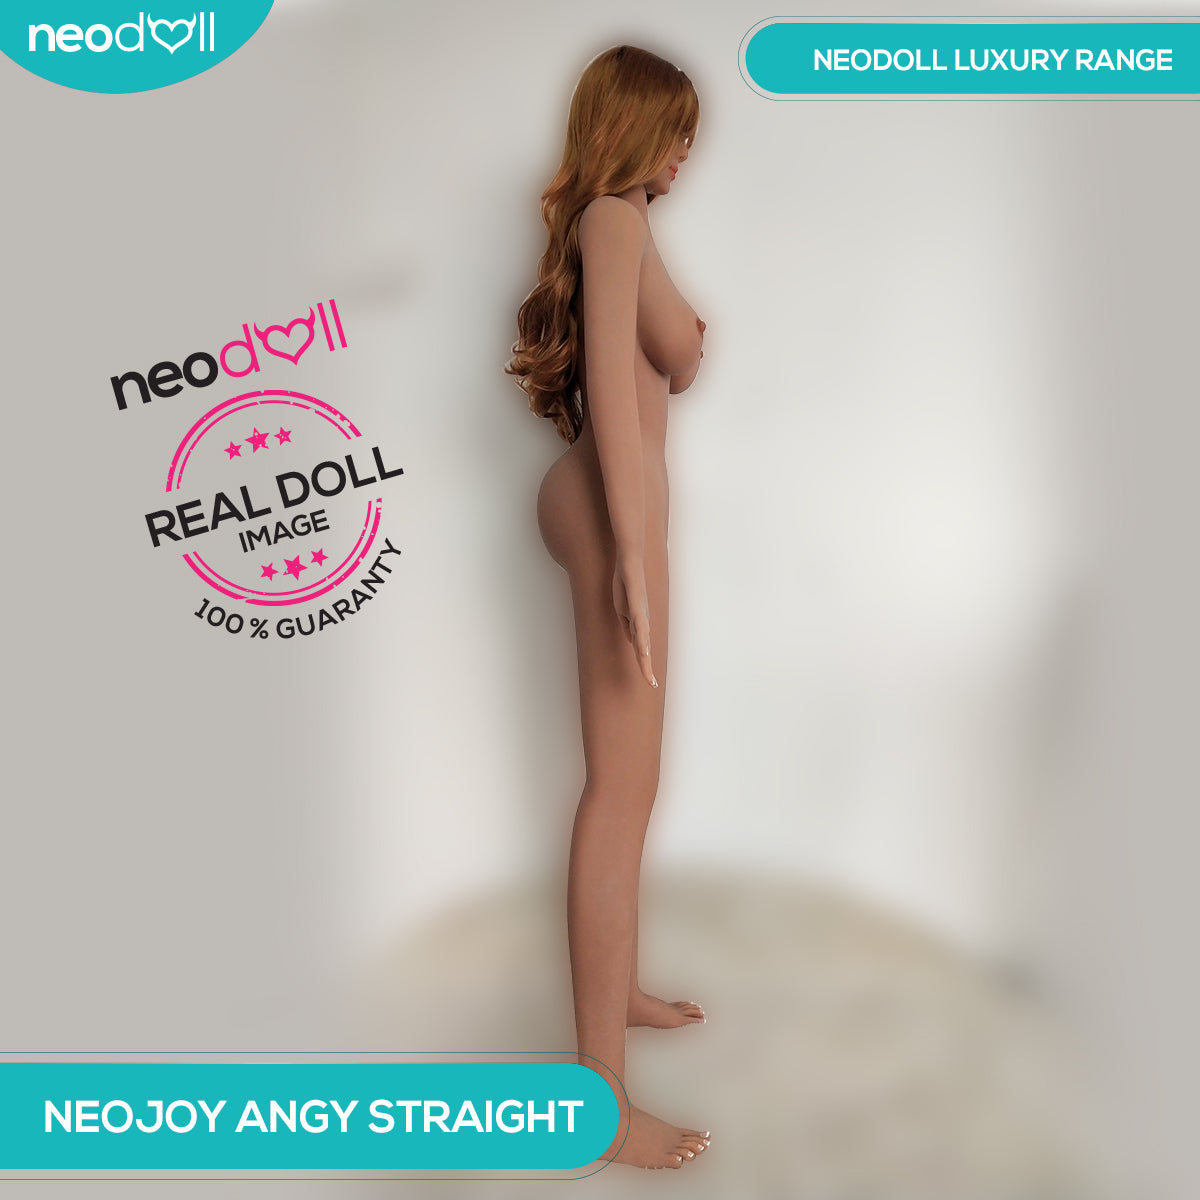 Neodoll Luxury Angy Straight - Realistic Sex Doll - 165cm